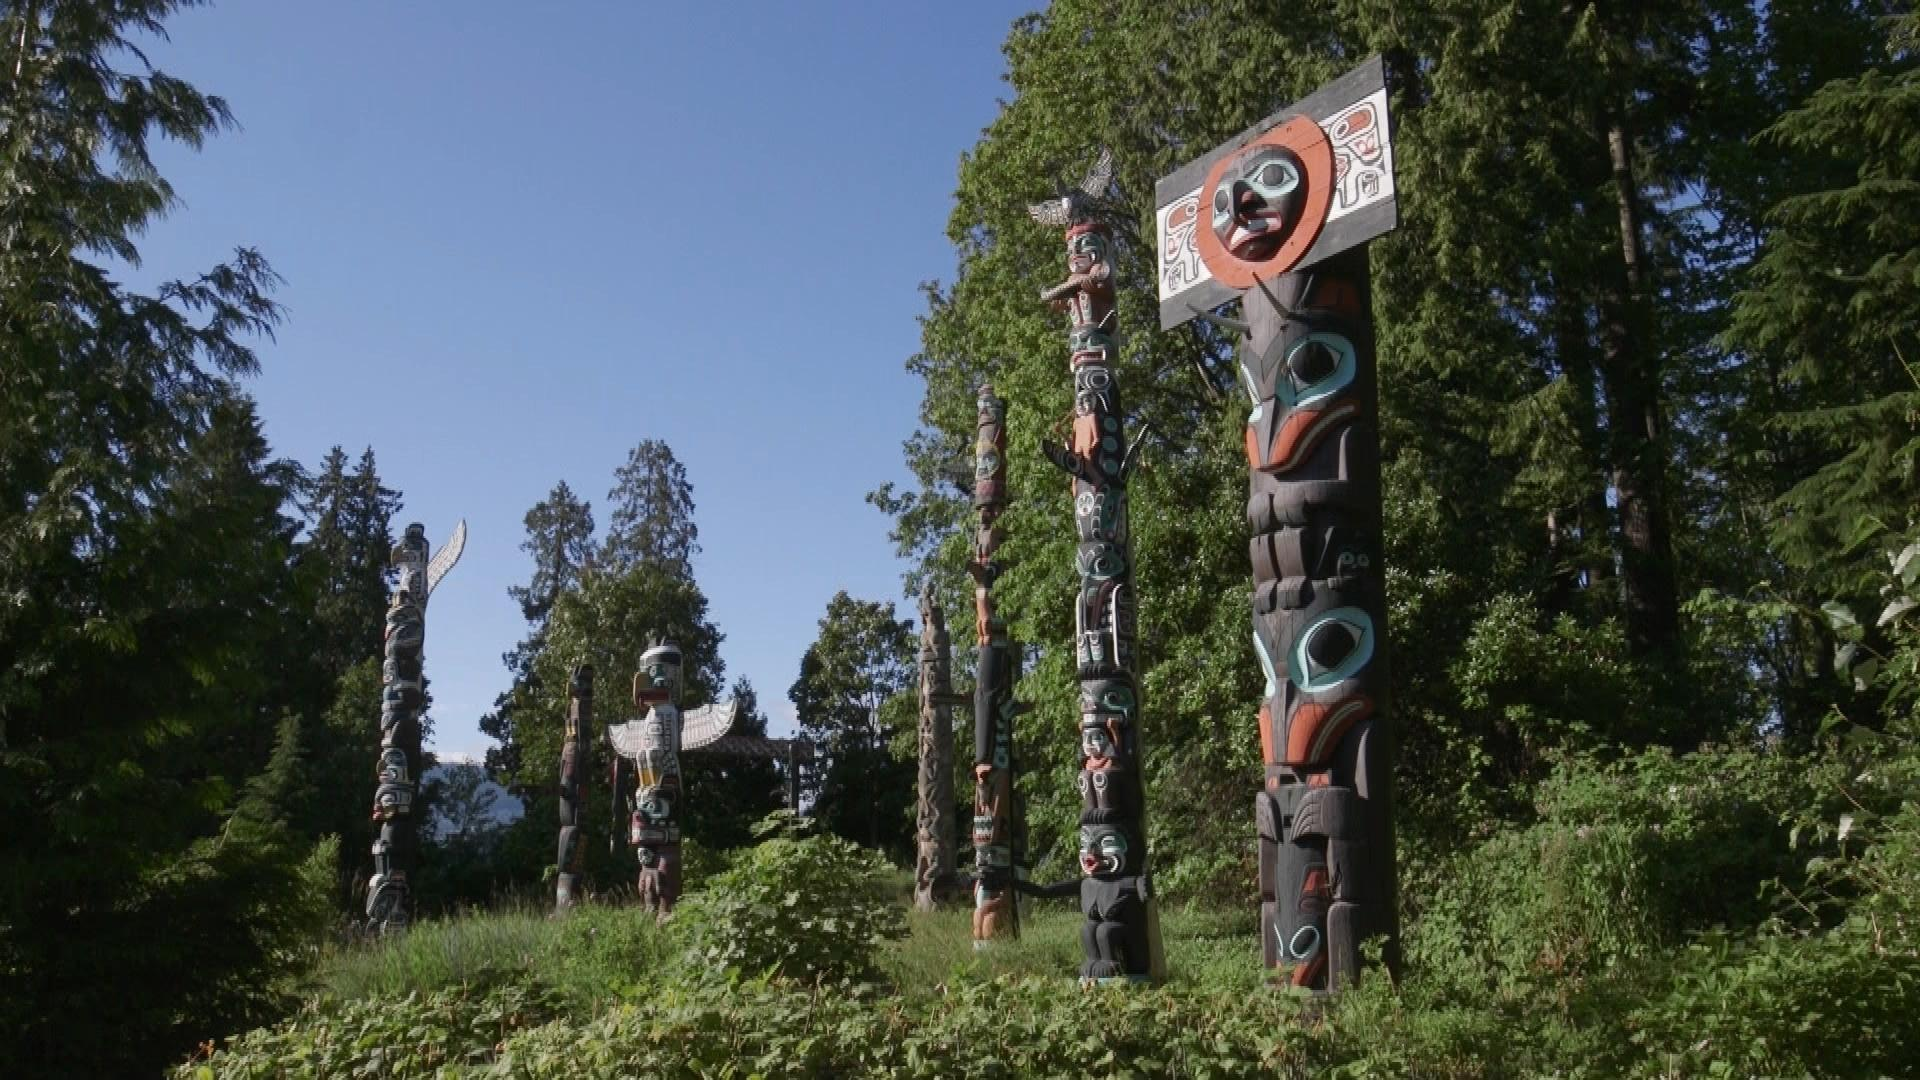 Totem poles at Bockton Point in Vancouver's Stanley Park